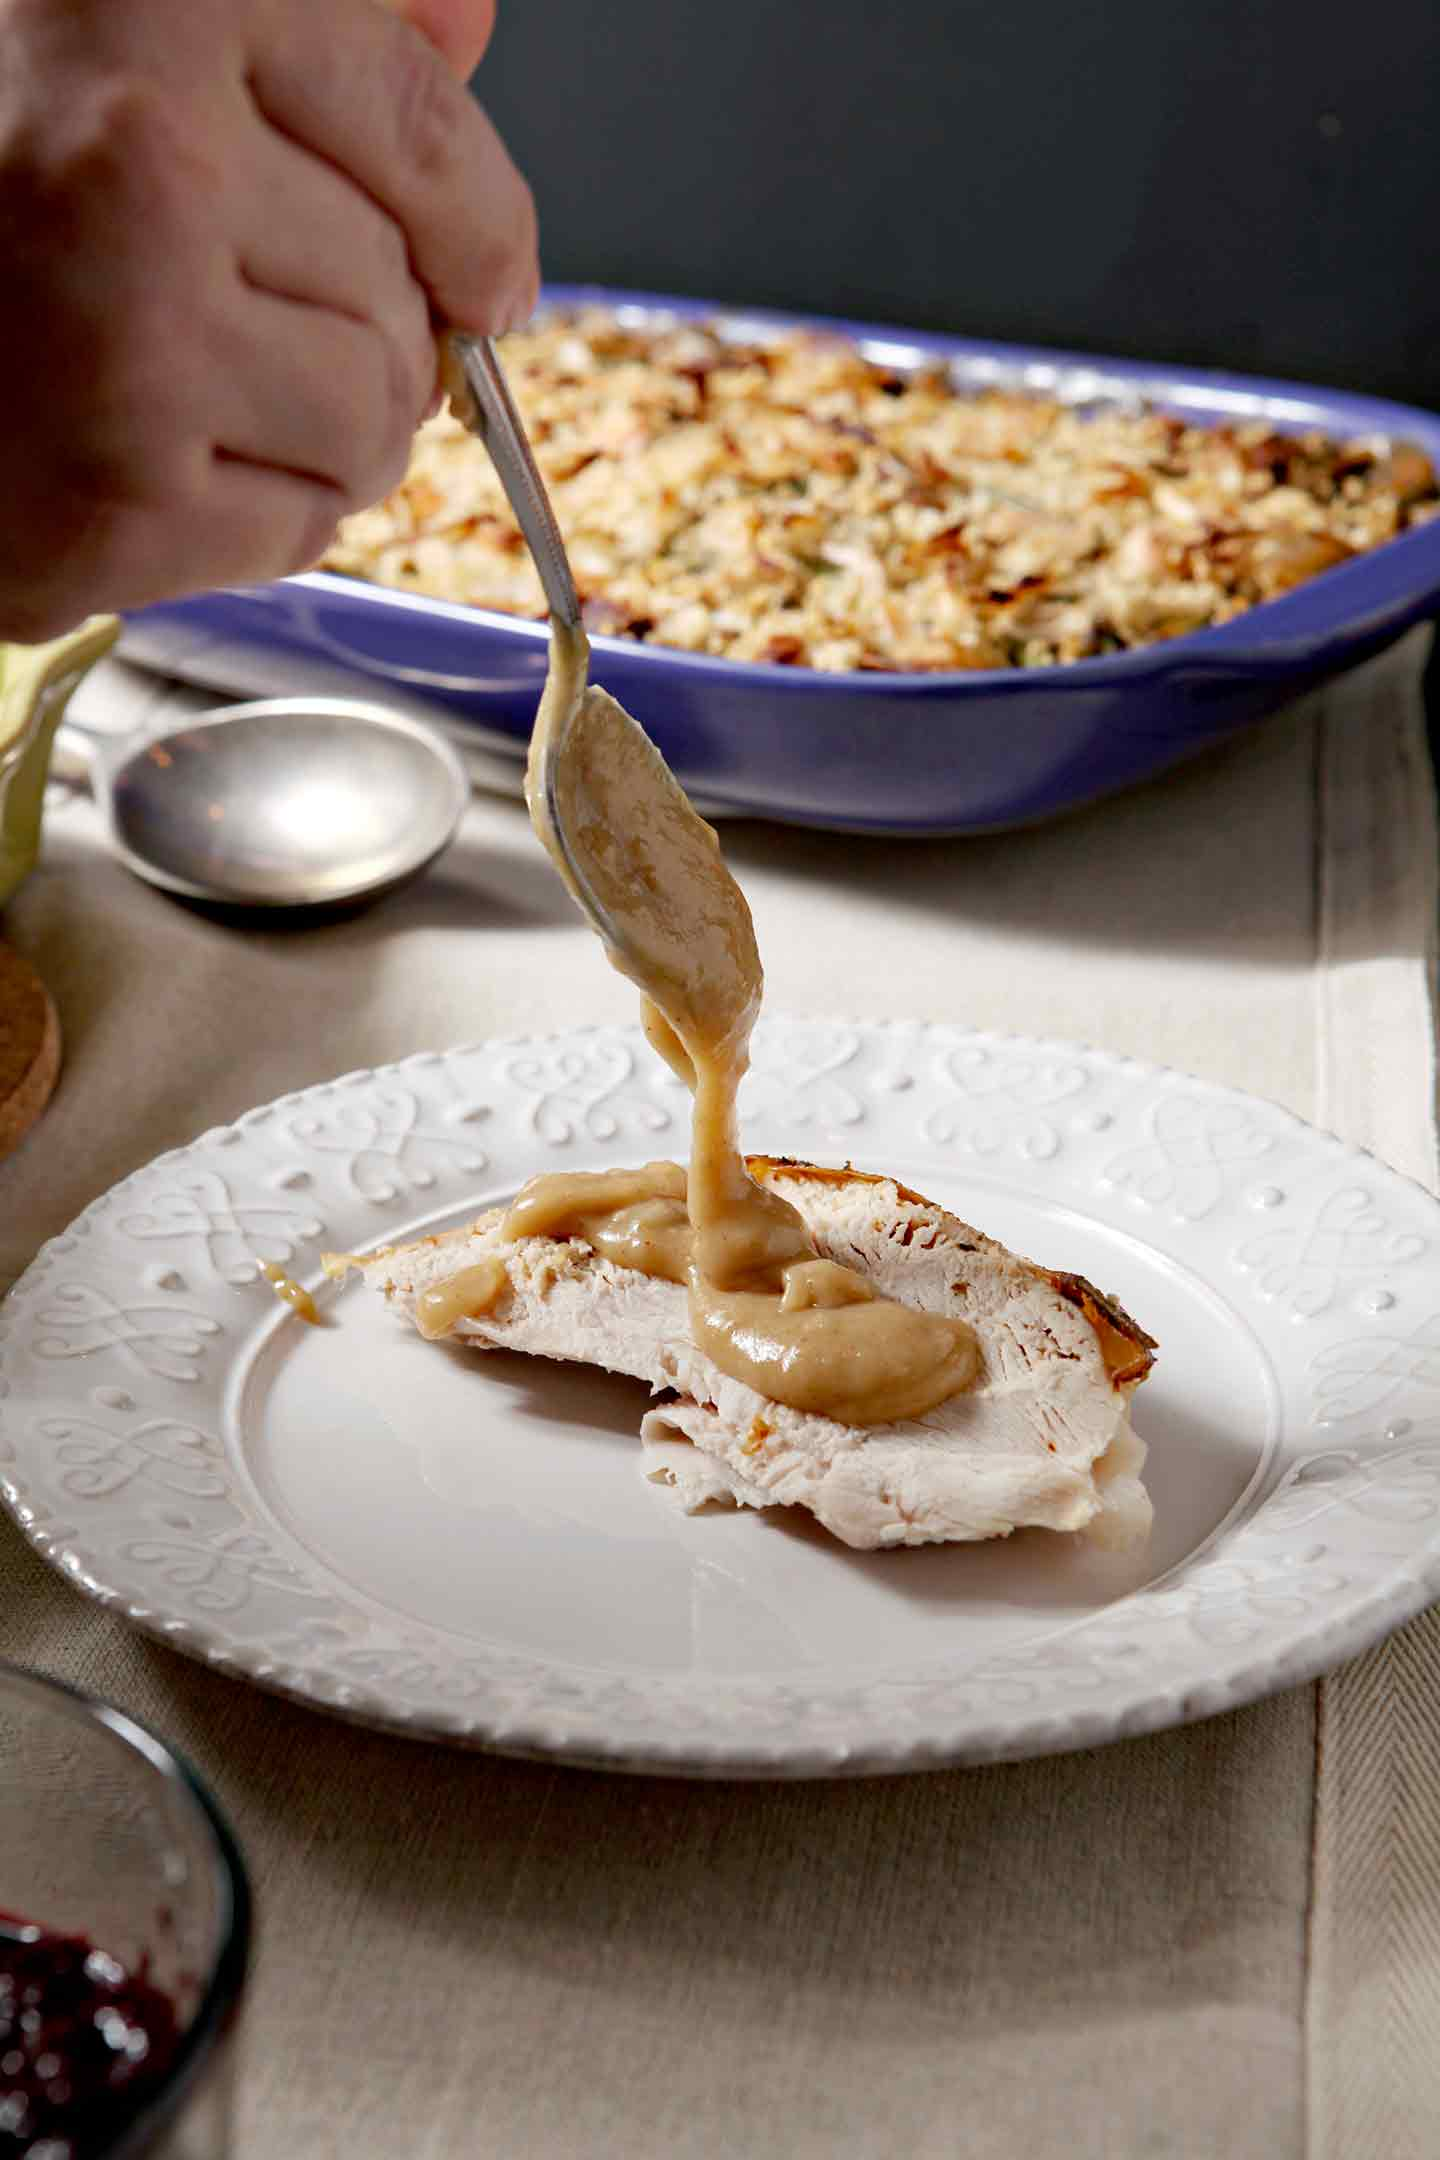 Gravy is drizzled on top of a slice of turkey breast on a plate